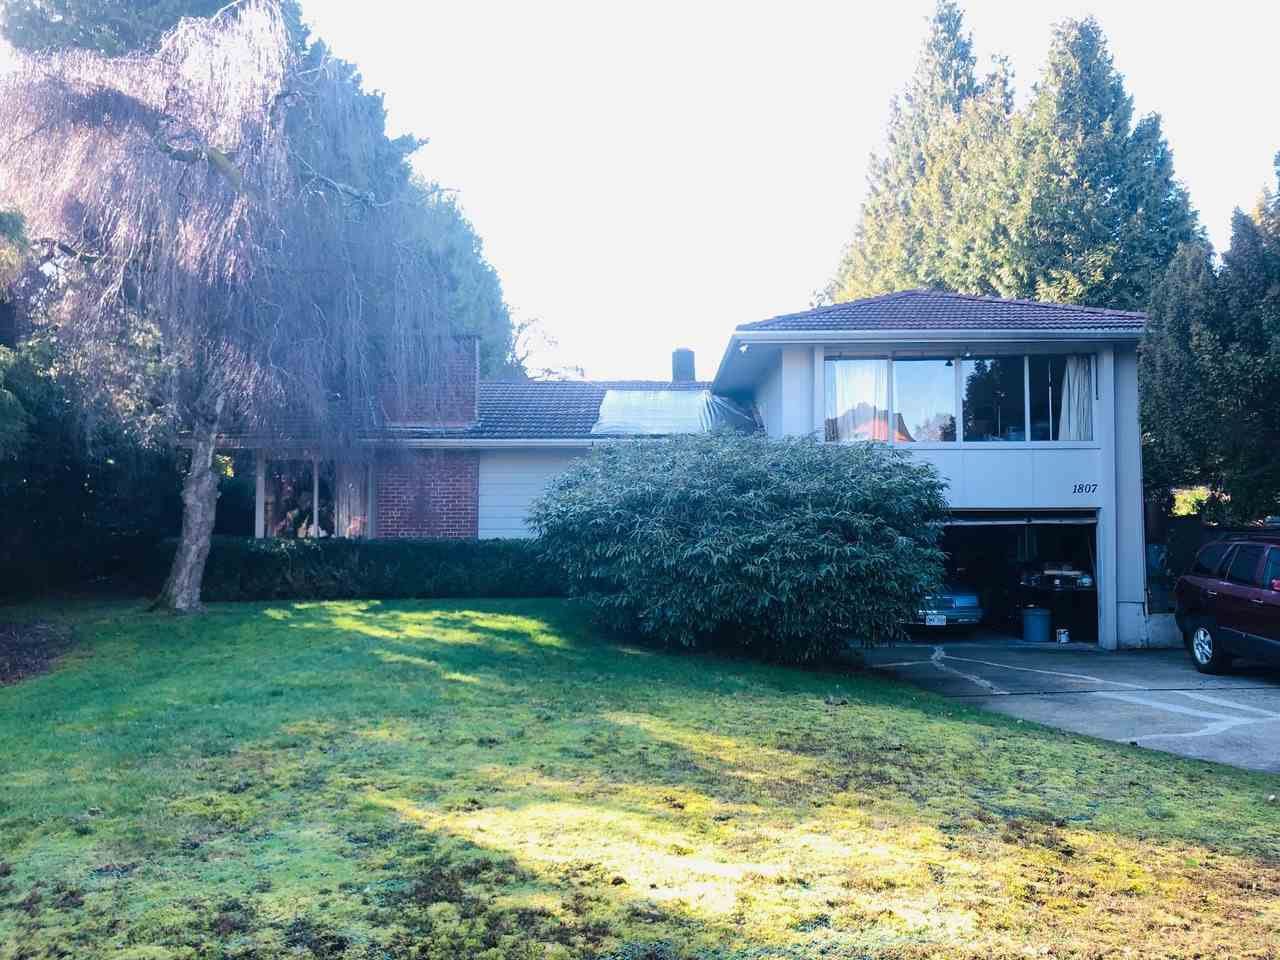 Main Photo: 1807 KNOX Road in Vancouver: University VW House for sale (Vancouver West)  : MLS®# R2446626